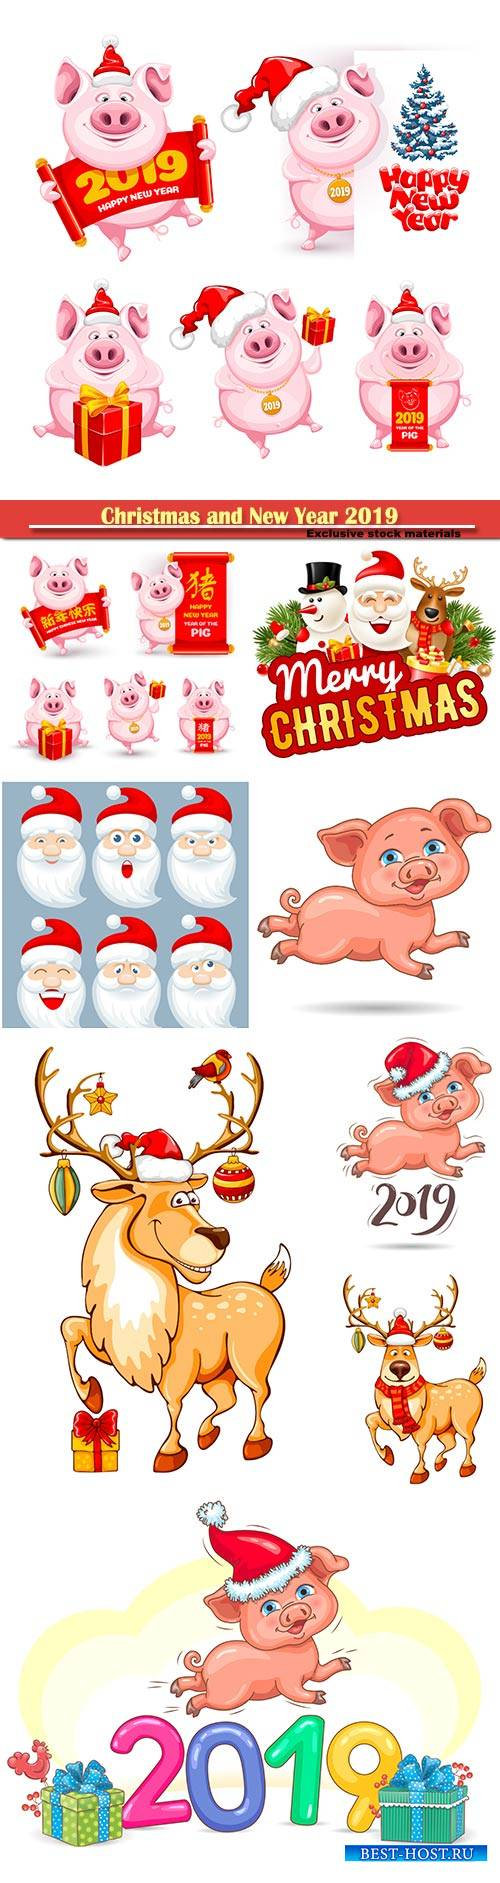 Christmas and New Year 2019 vector illustration, cartoon pigs